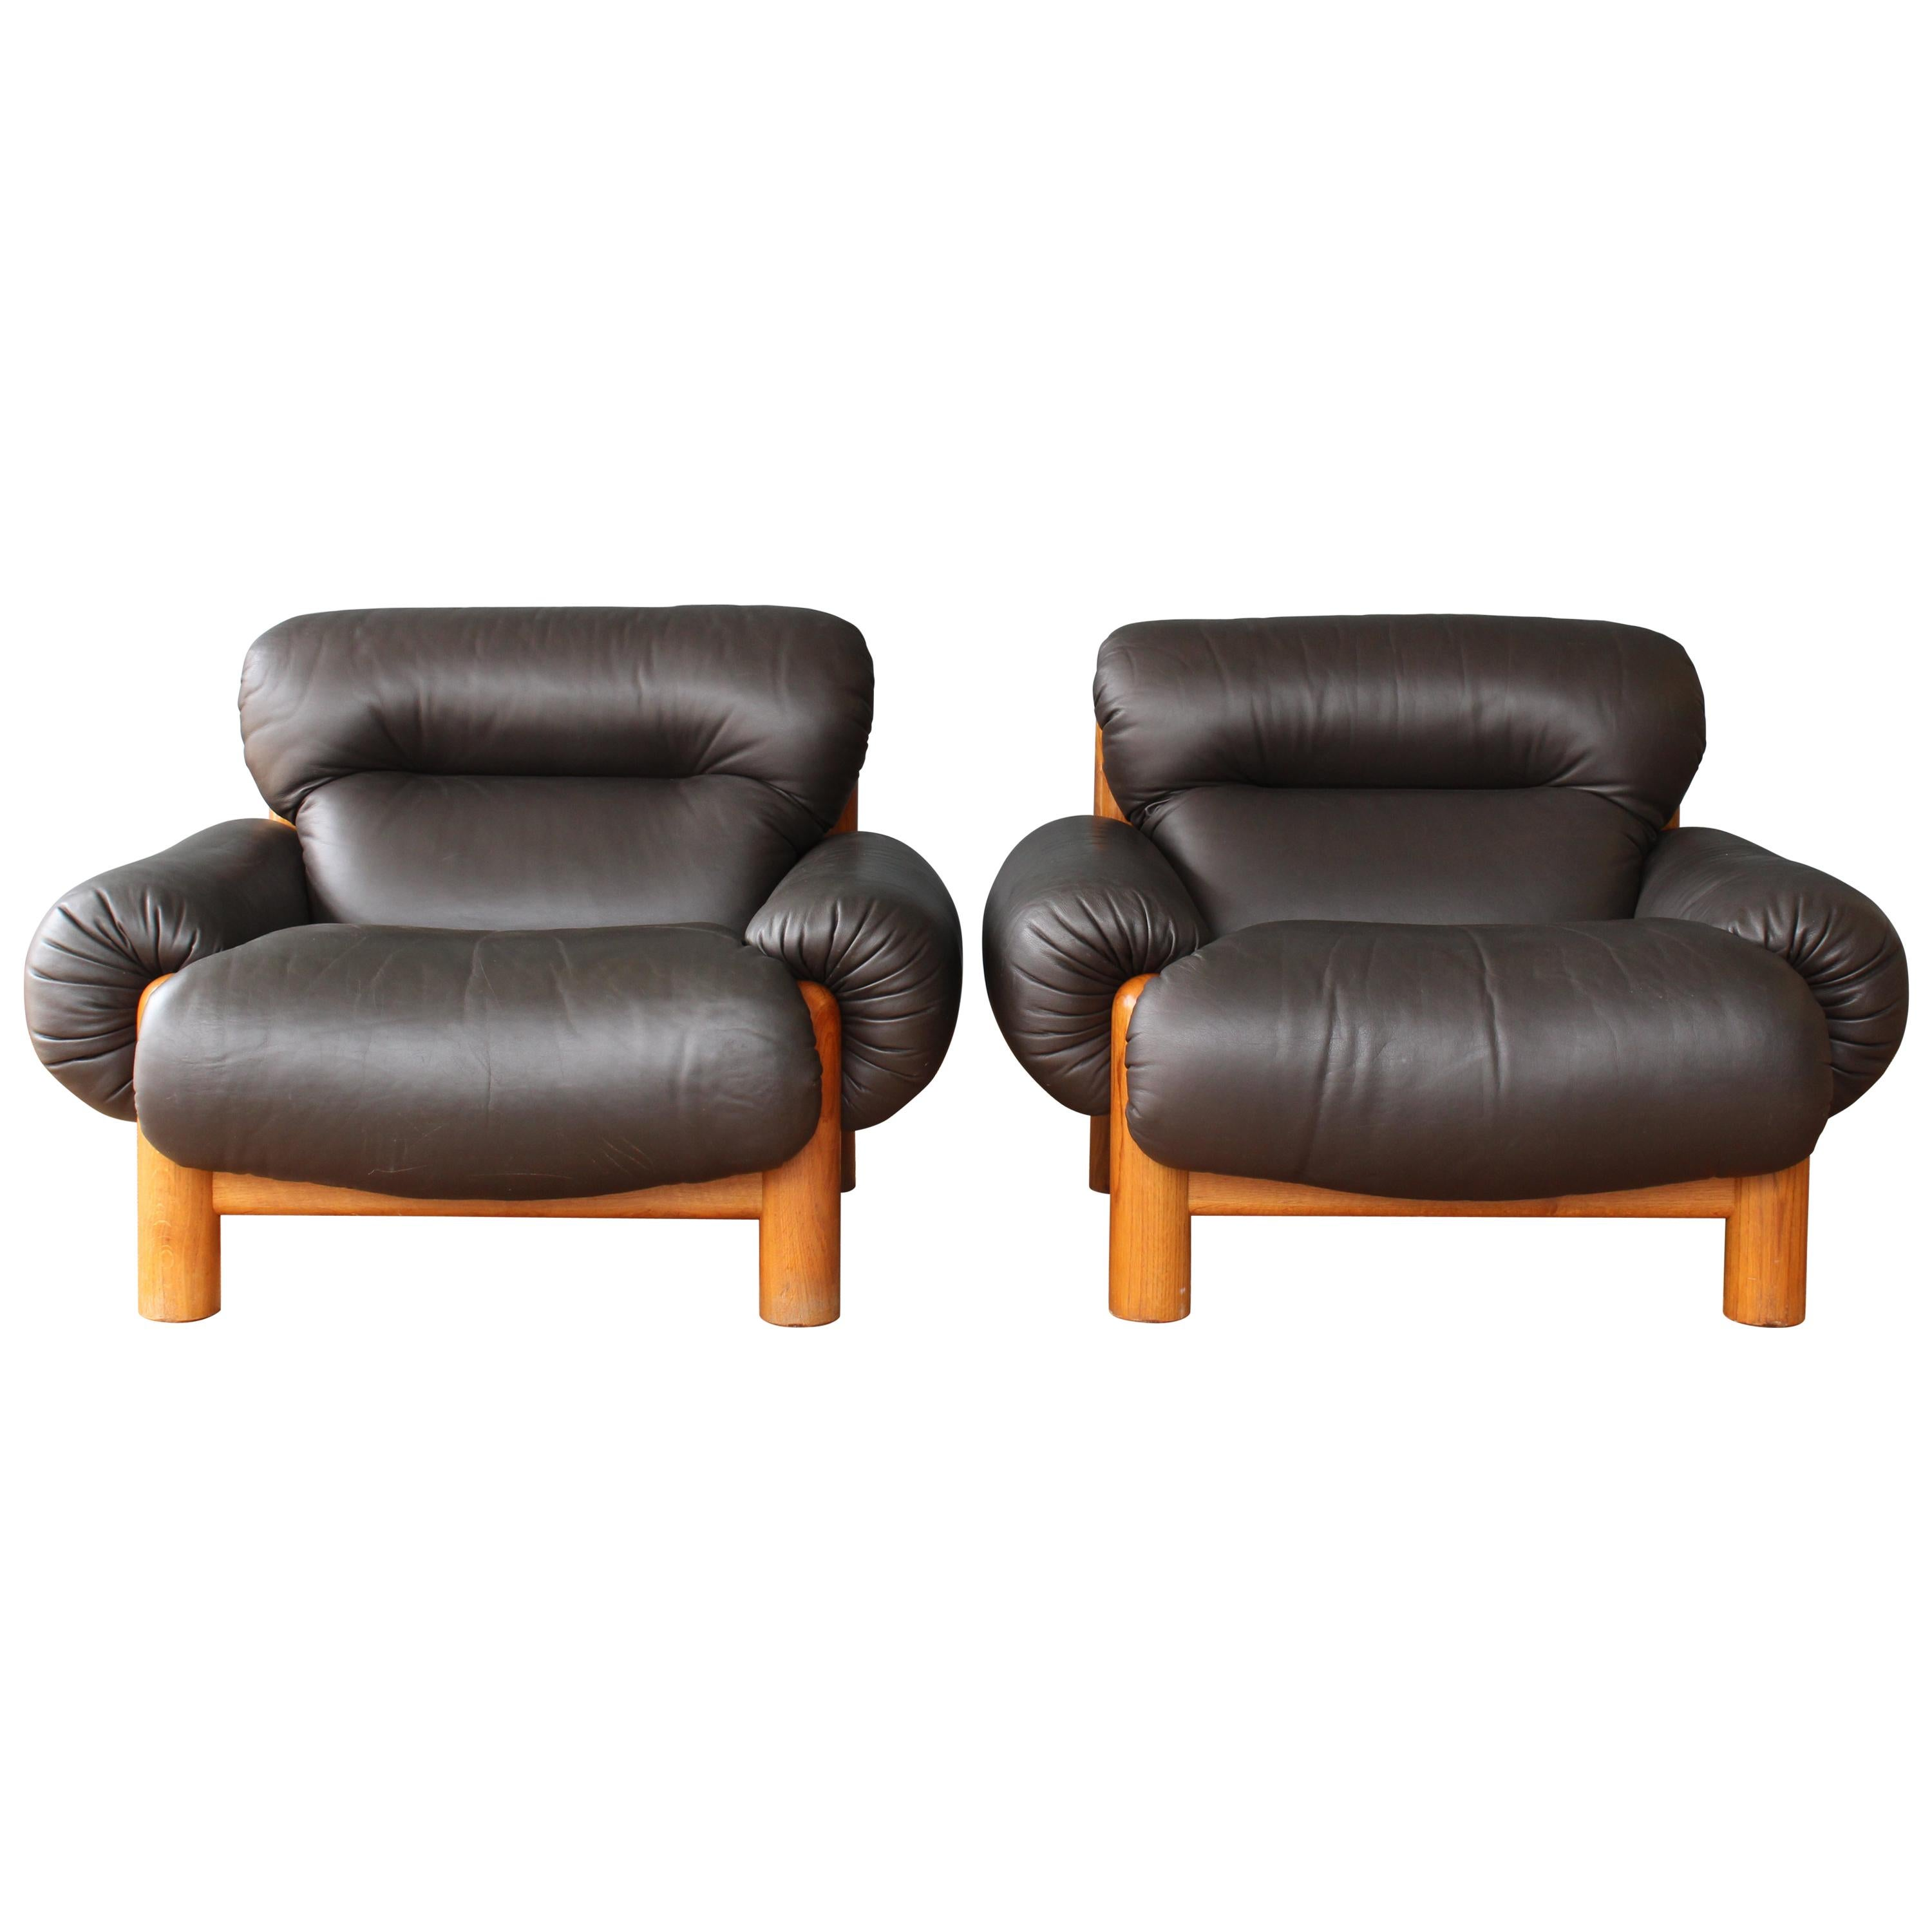 Pair Of Oak And Leather Chairs, 1970s, Italy For Sale